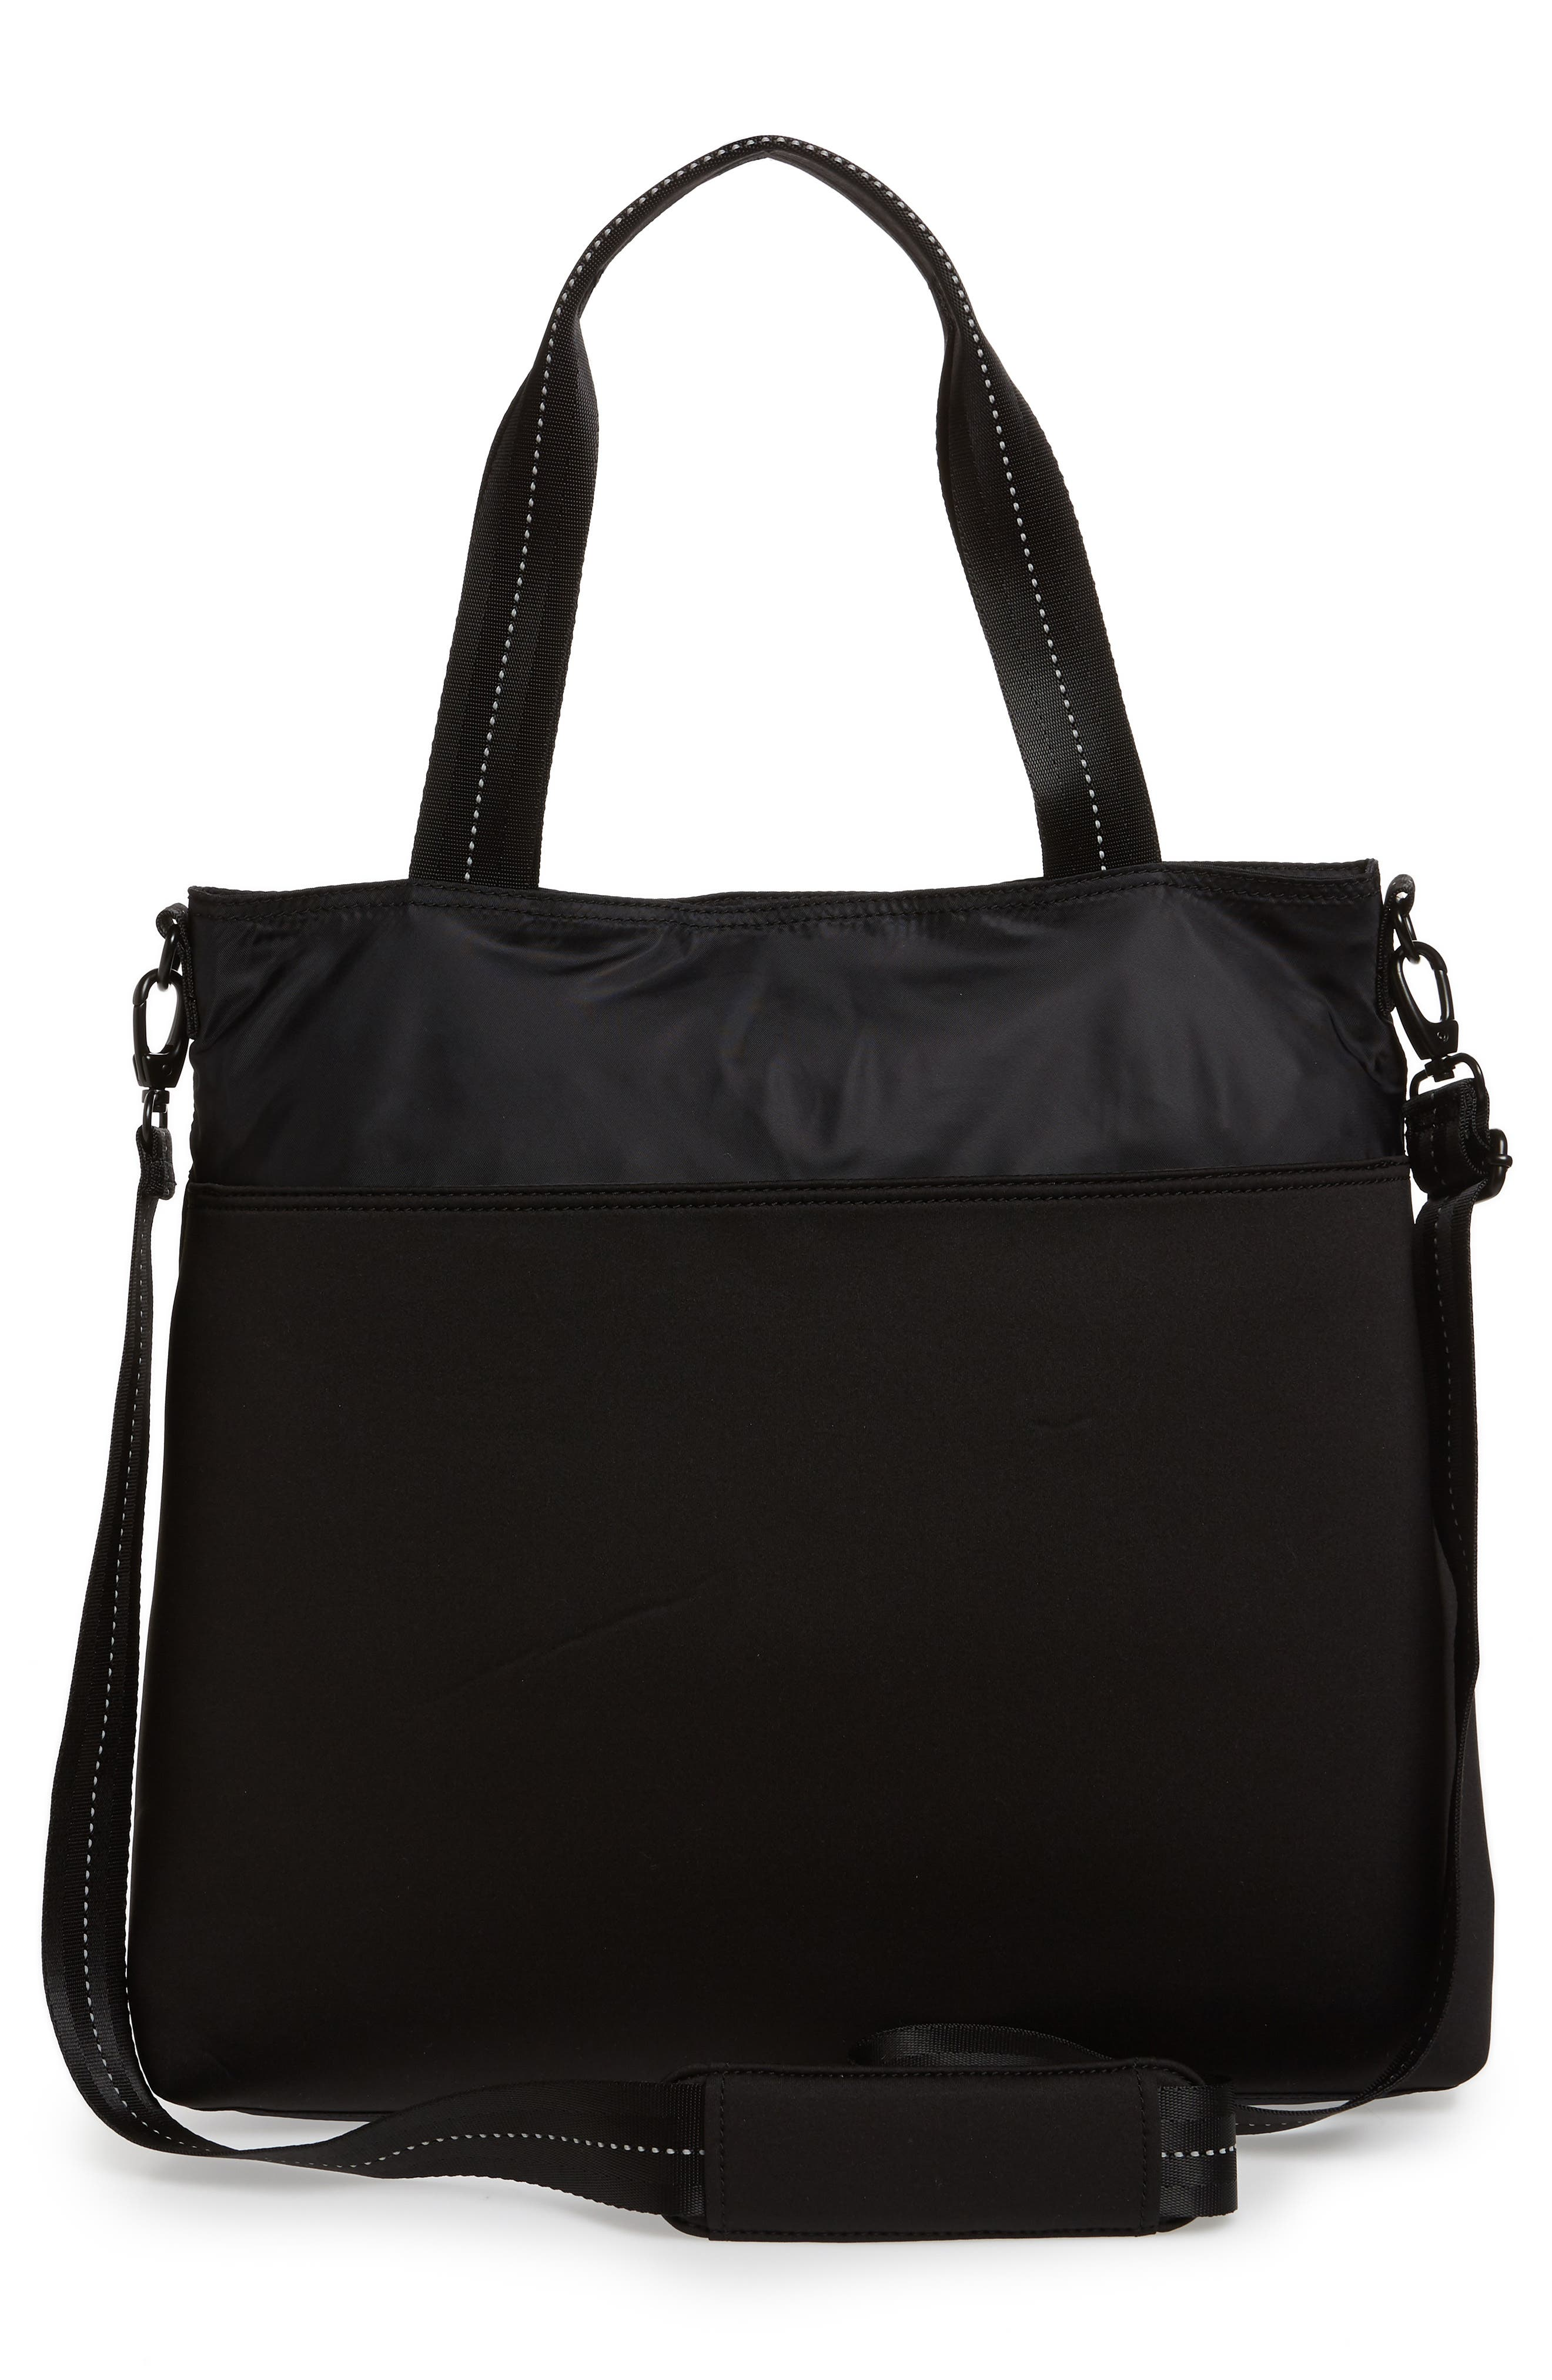 Reflective Nylon Tote Bag,                             Alternate thumbnail 3, color,                             Black